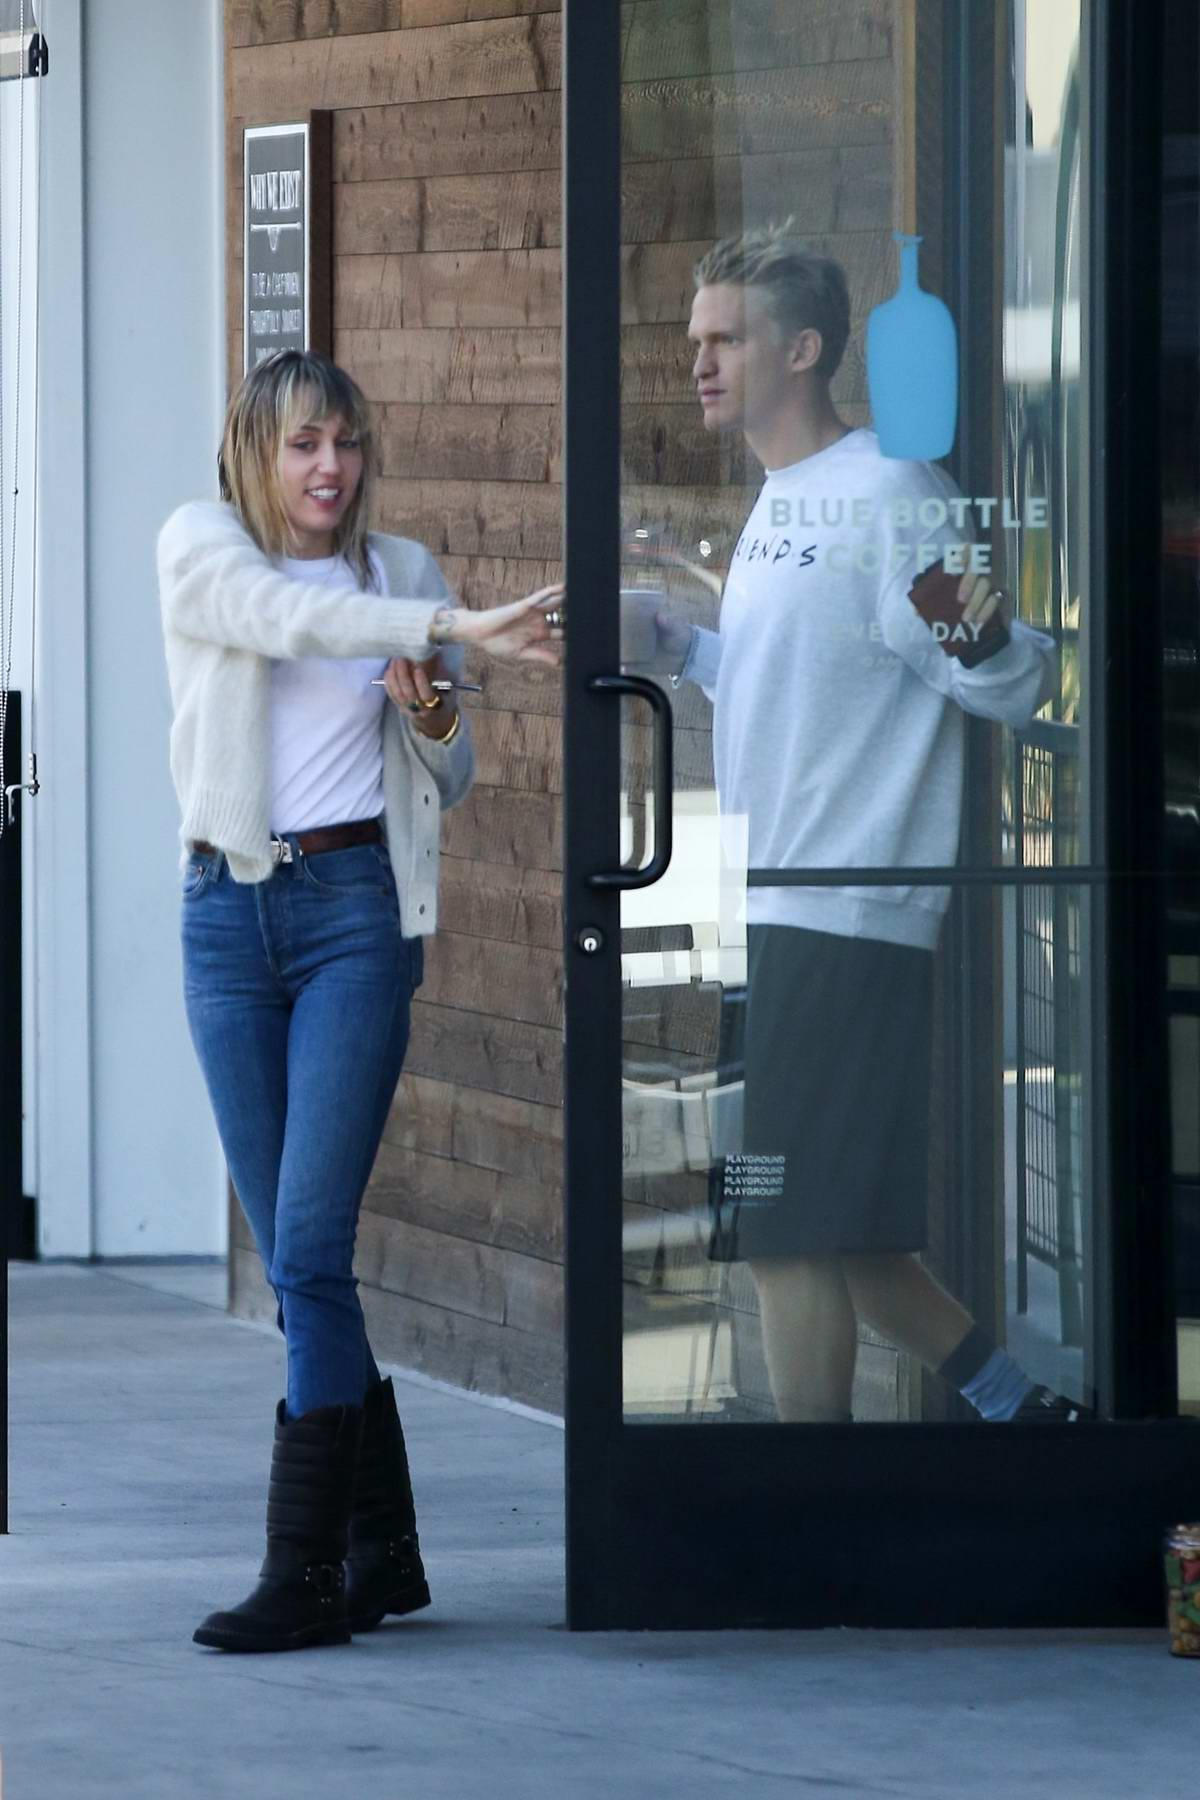 Miley Cyrus and Cody Simpson spotted together during a coffee run at Blue Bottle Coffee in Studio City, Los Angeles